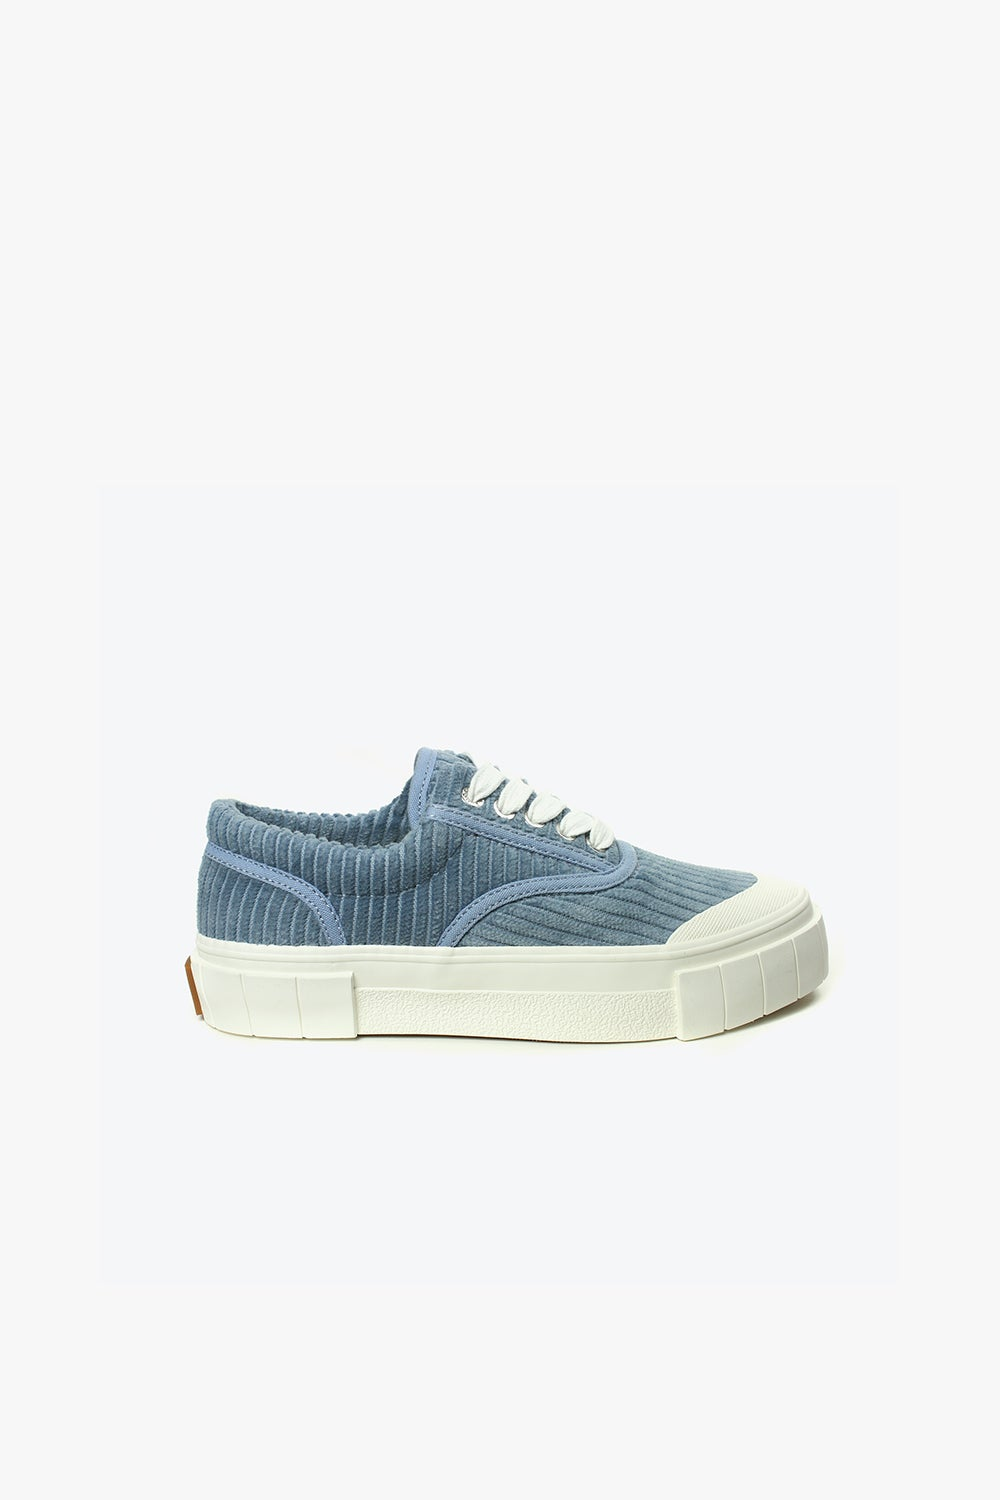 Good News Opal Corduroy Blue